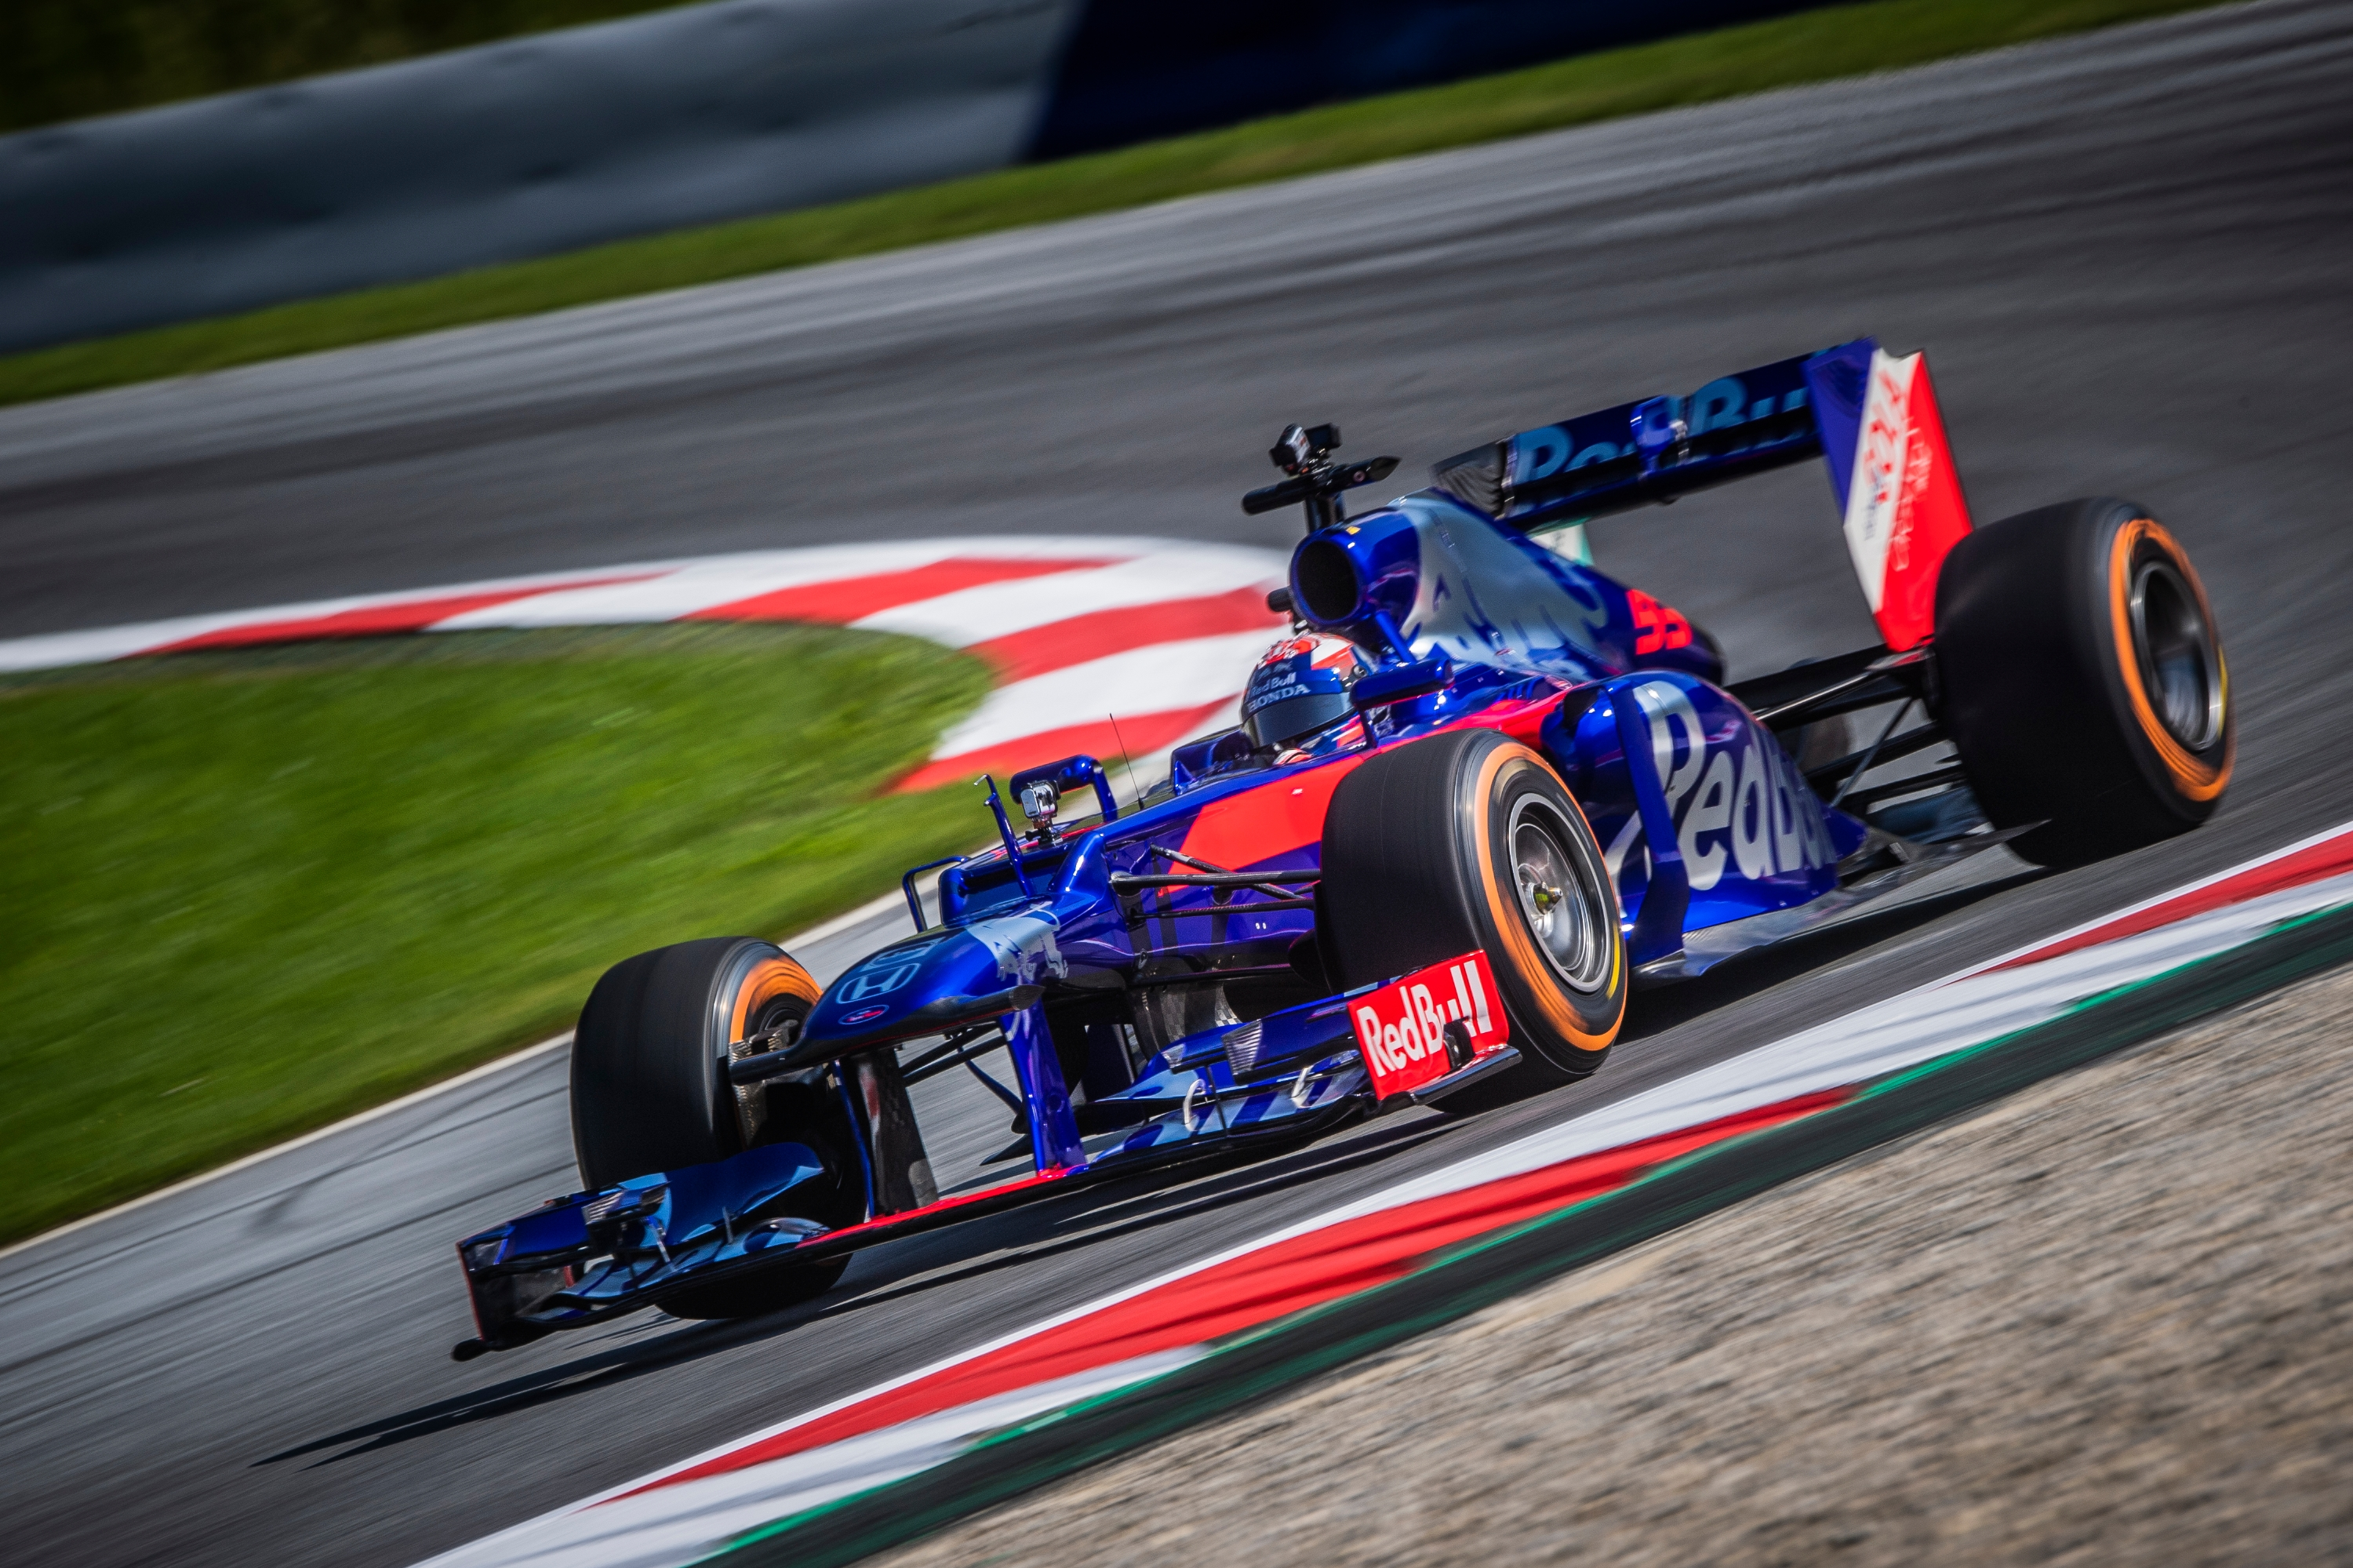 Watch MotoGP star Marquez testing Toro Rosso F1 car